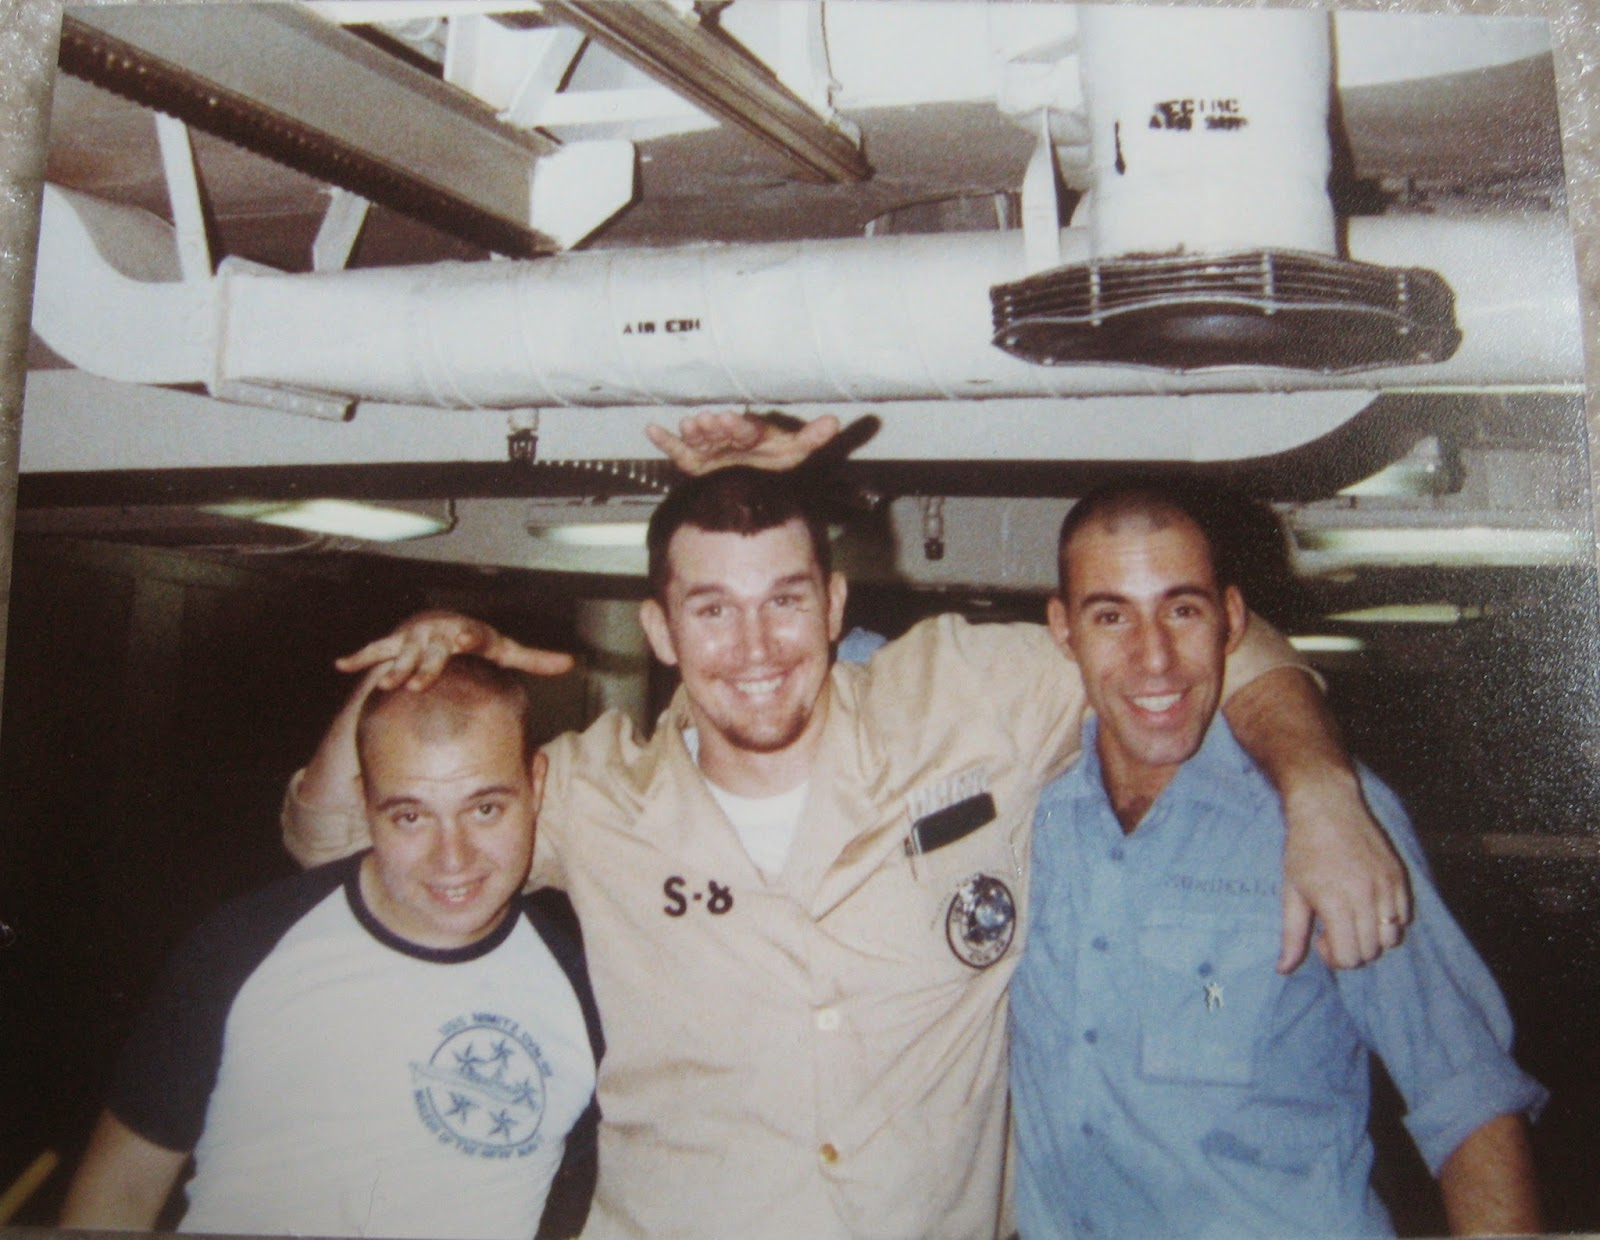 Bill Scire, BB, Tommy Mondello on mess decks USS Nimitz 1982/1983